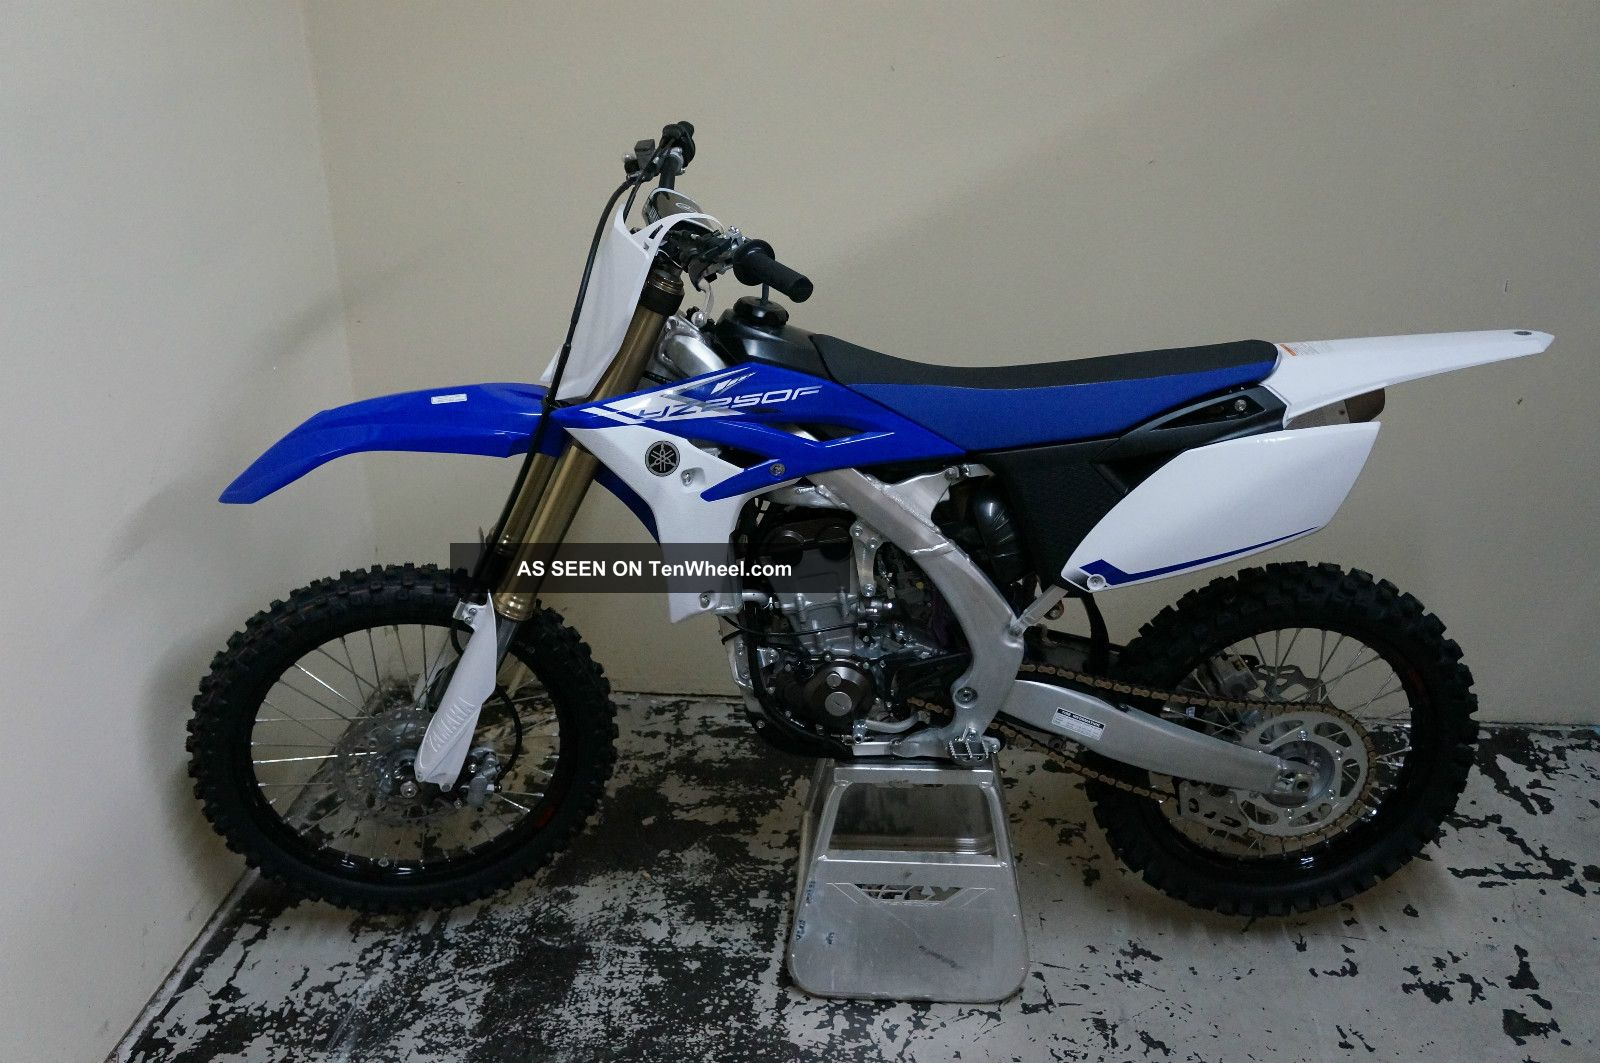 2013 Yamaha Yz 250f Yz 250 F YZ photo